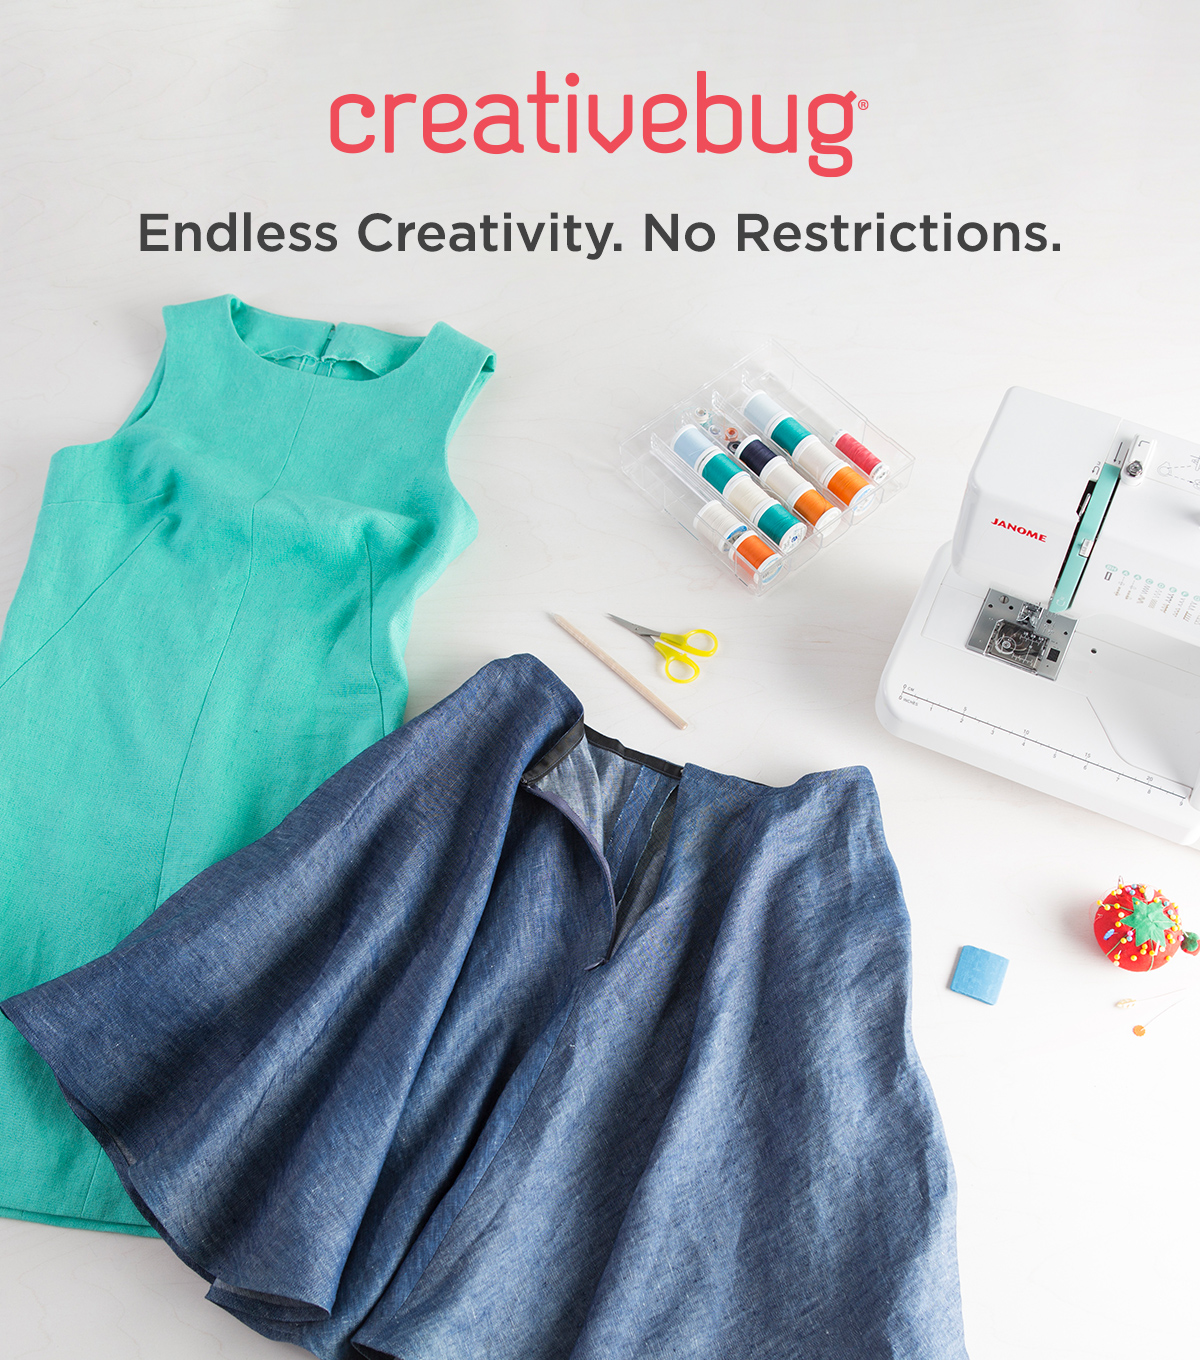 Creativebug.com: 6 Months Unlimited Subscription